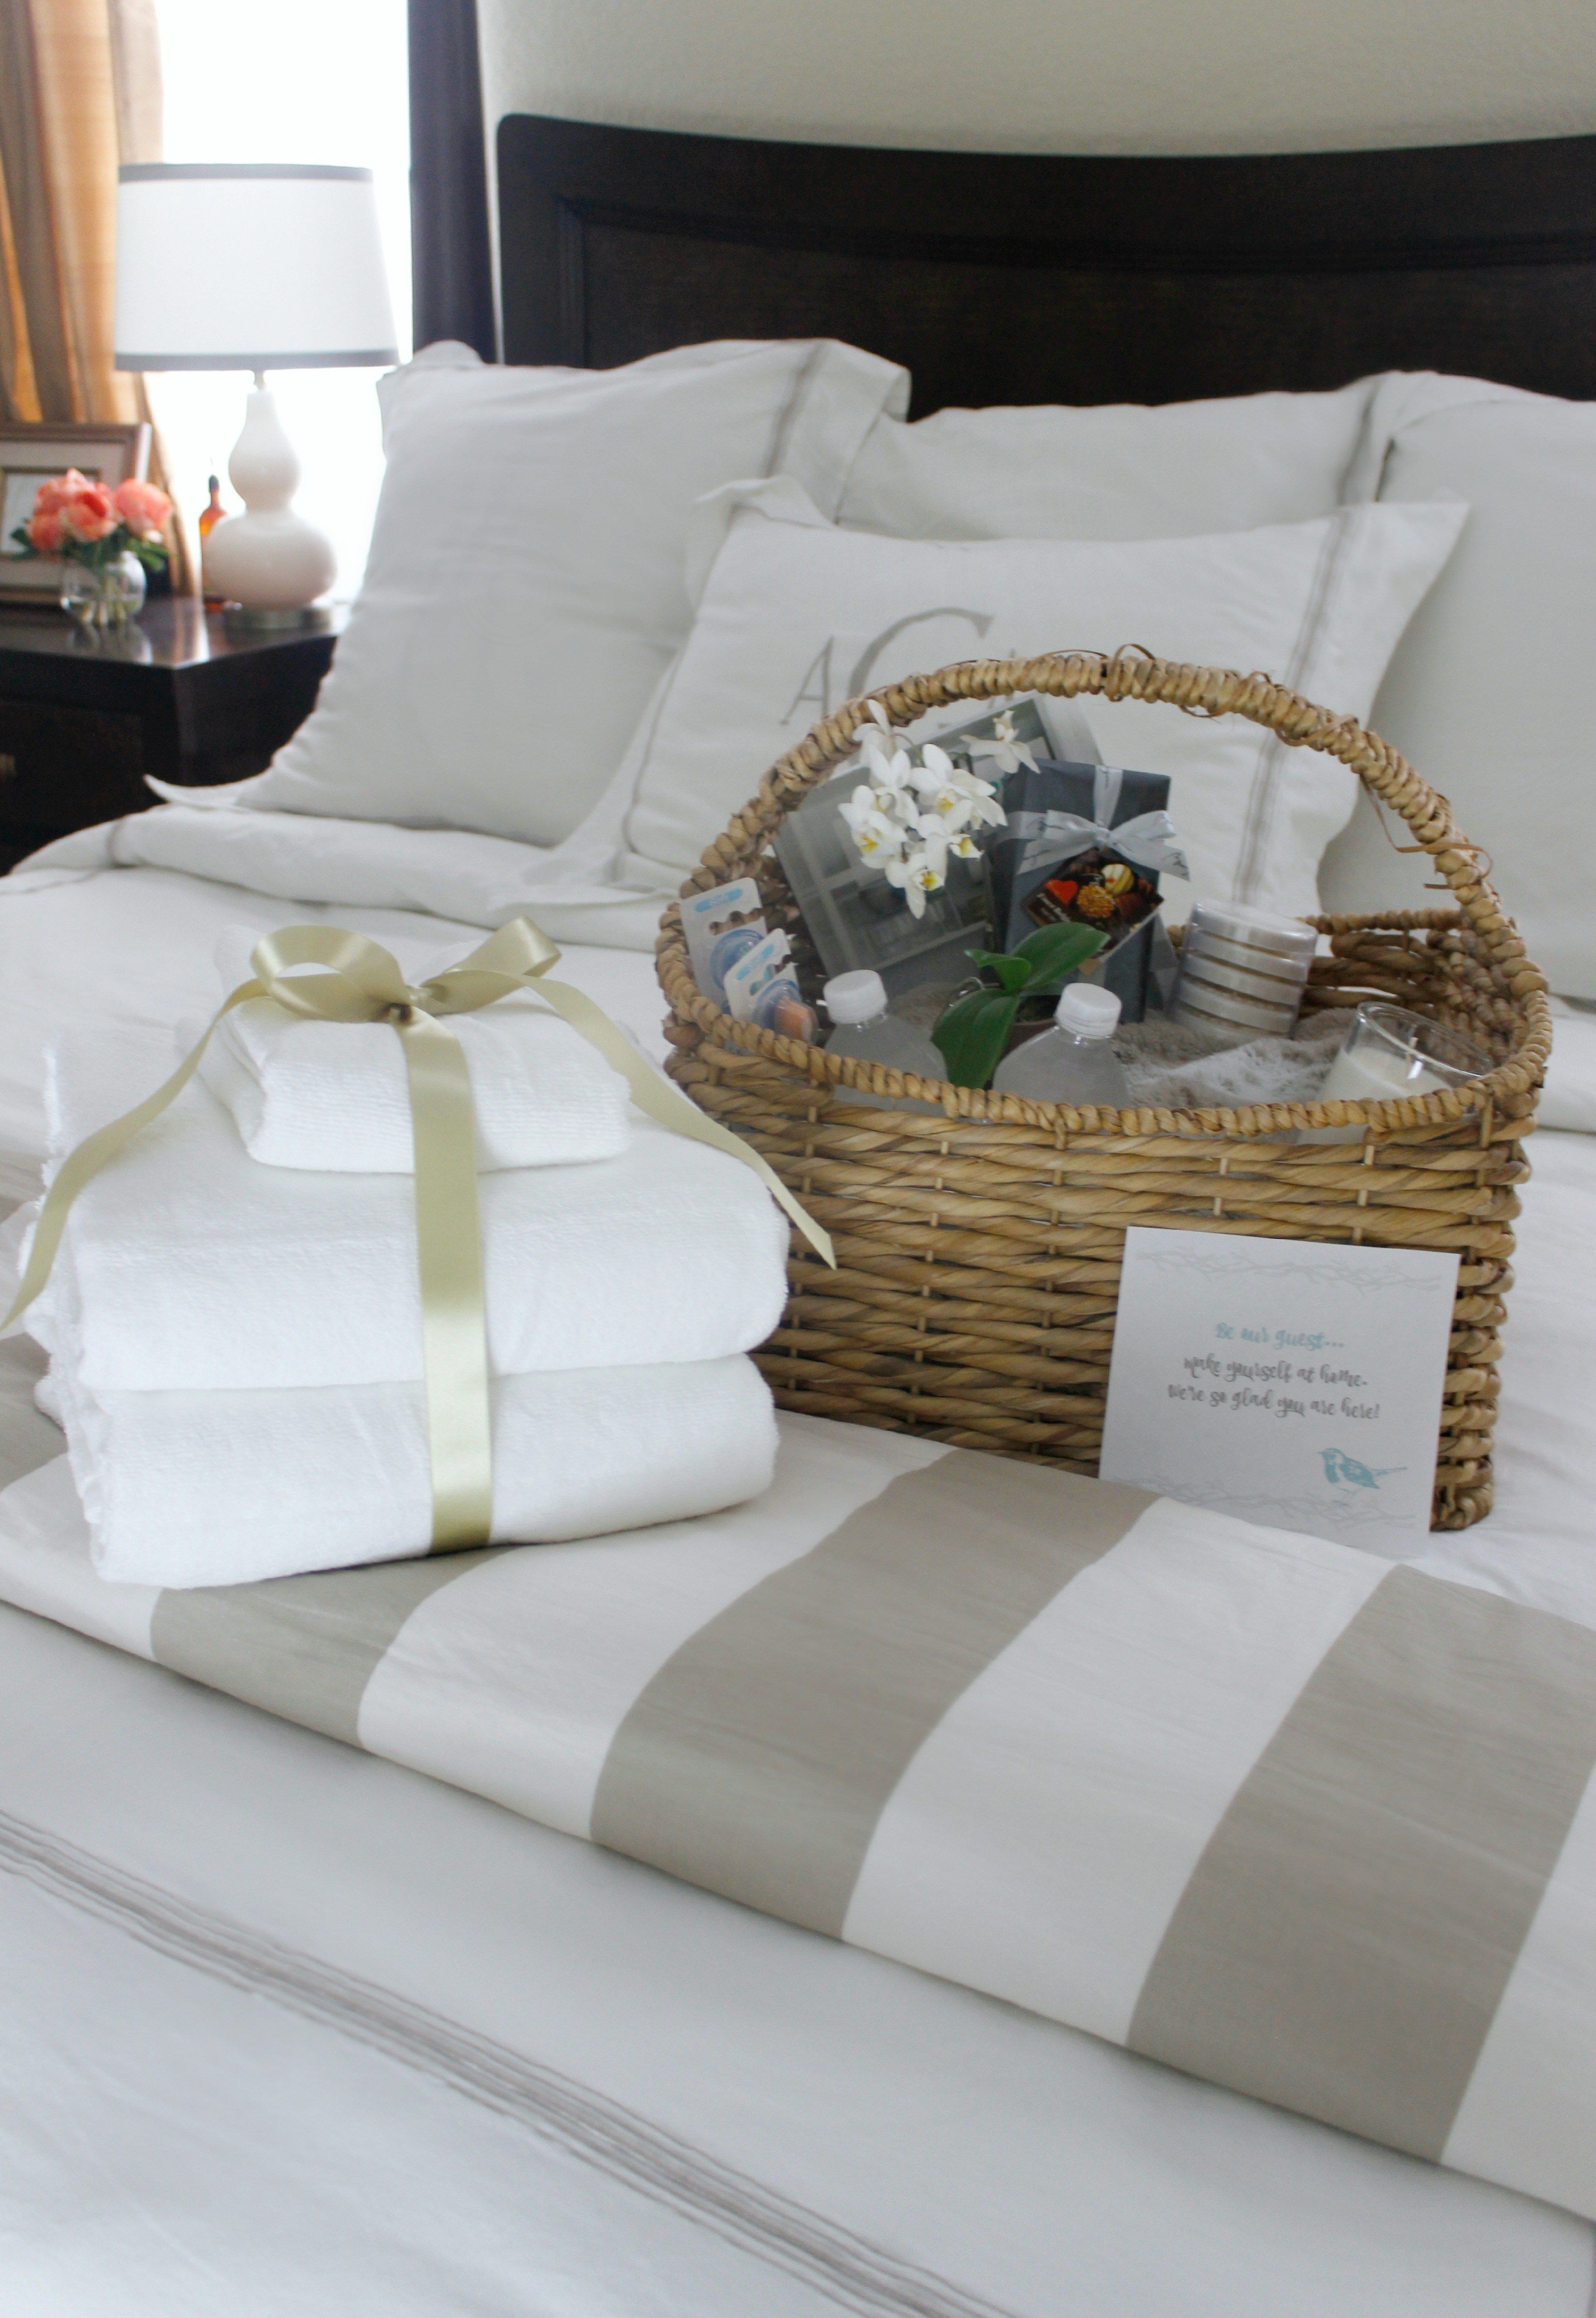 Overnight Guest Welcome Basket Guest Room Essentials